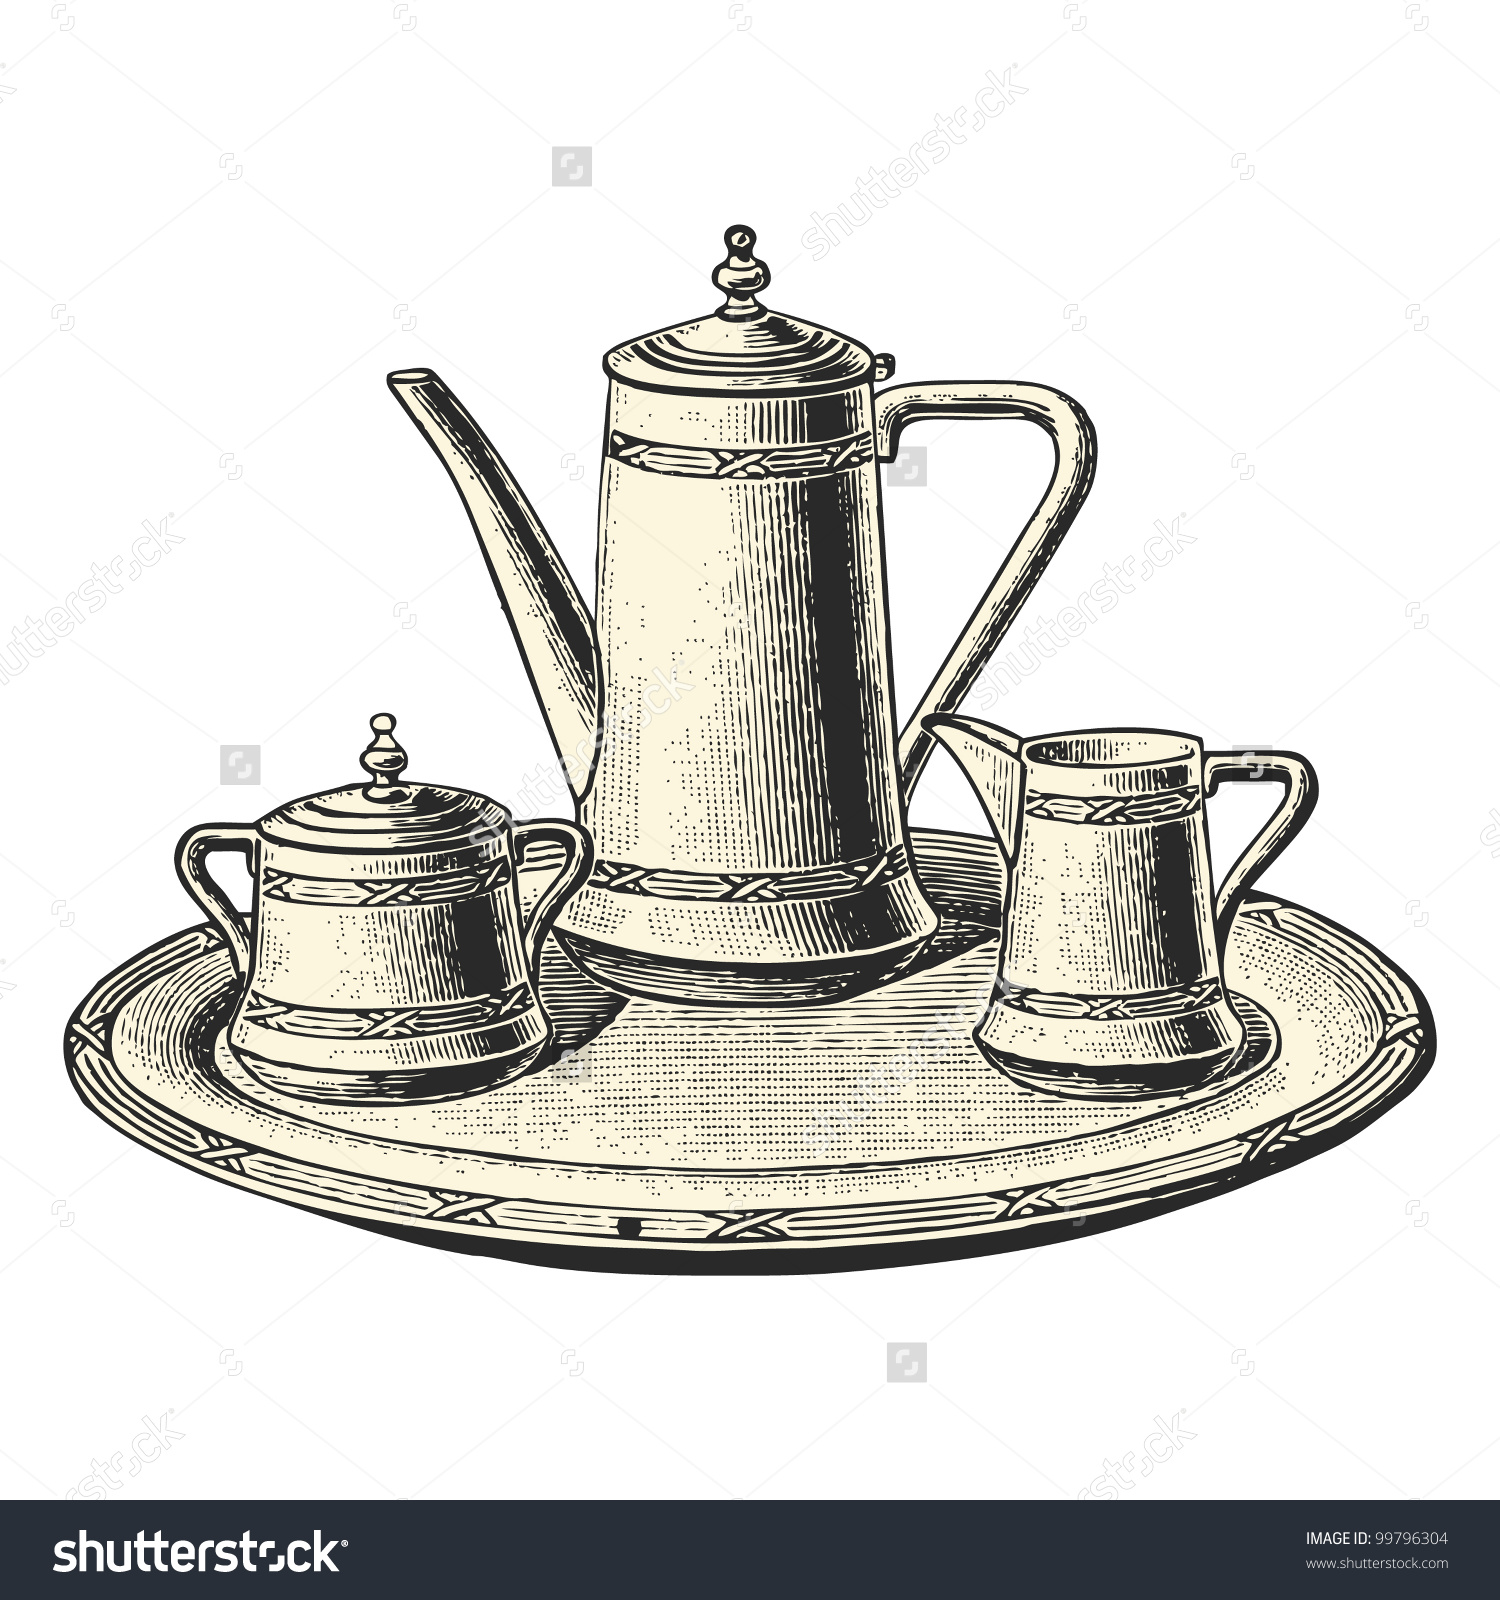 Coffee service clipart #4